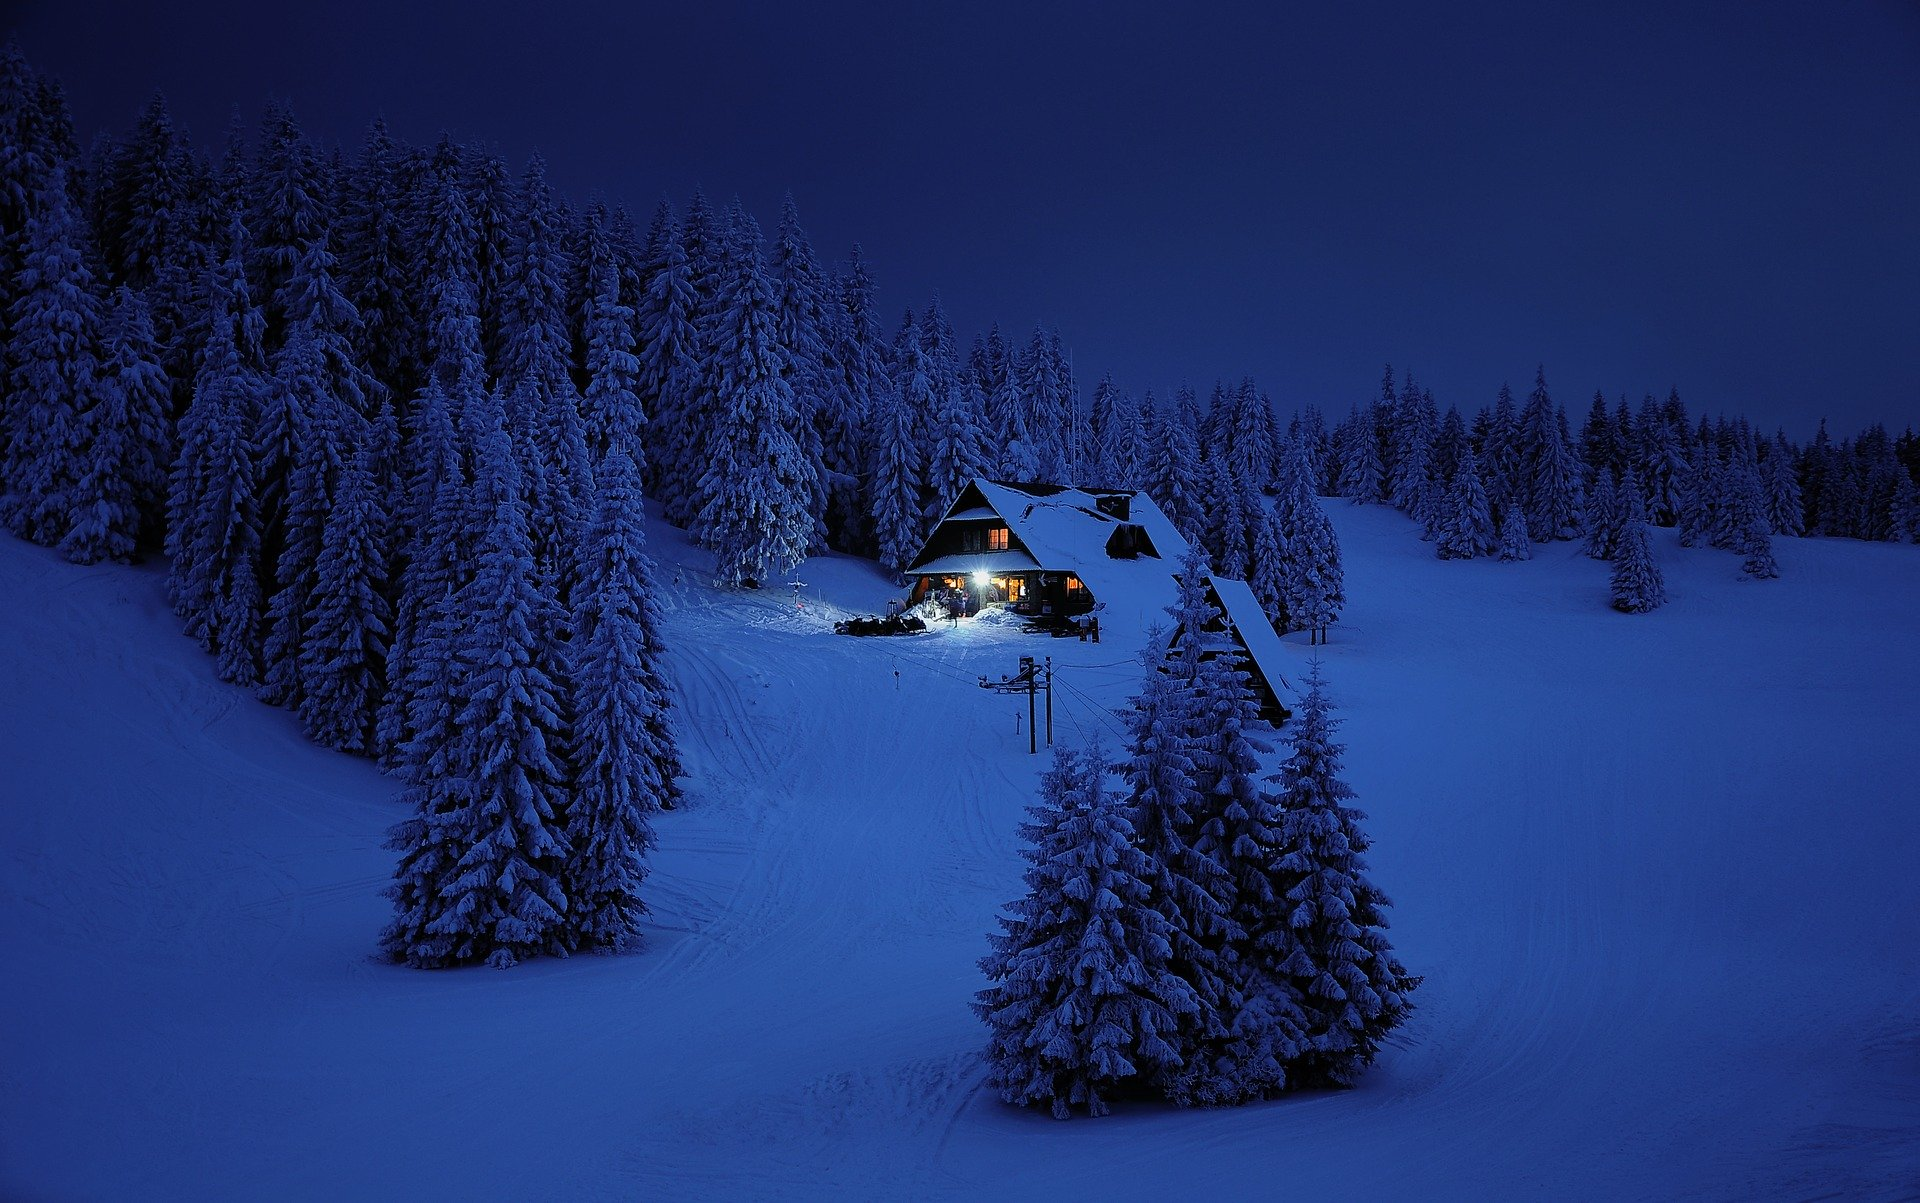 chalet dans la neige, night view, house in the snow